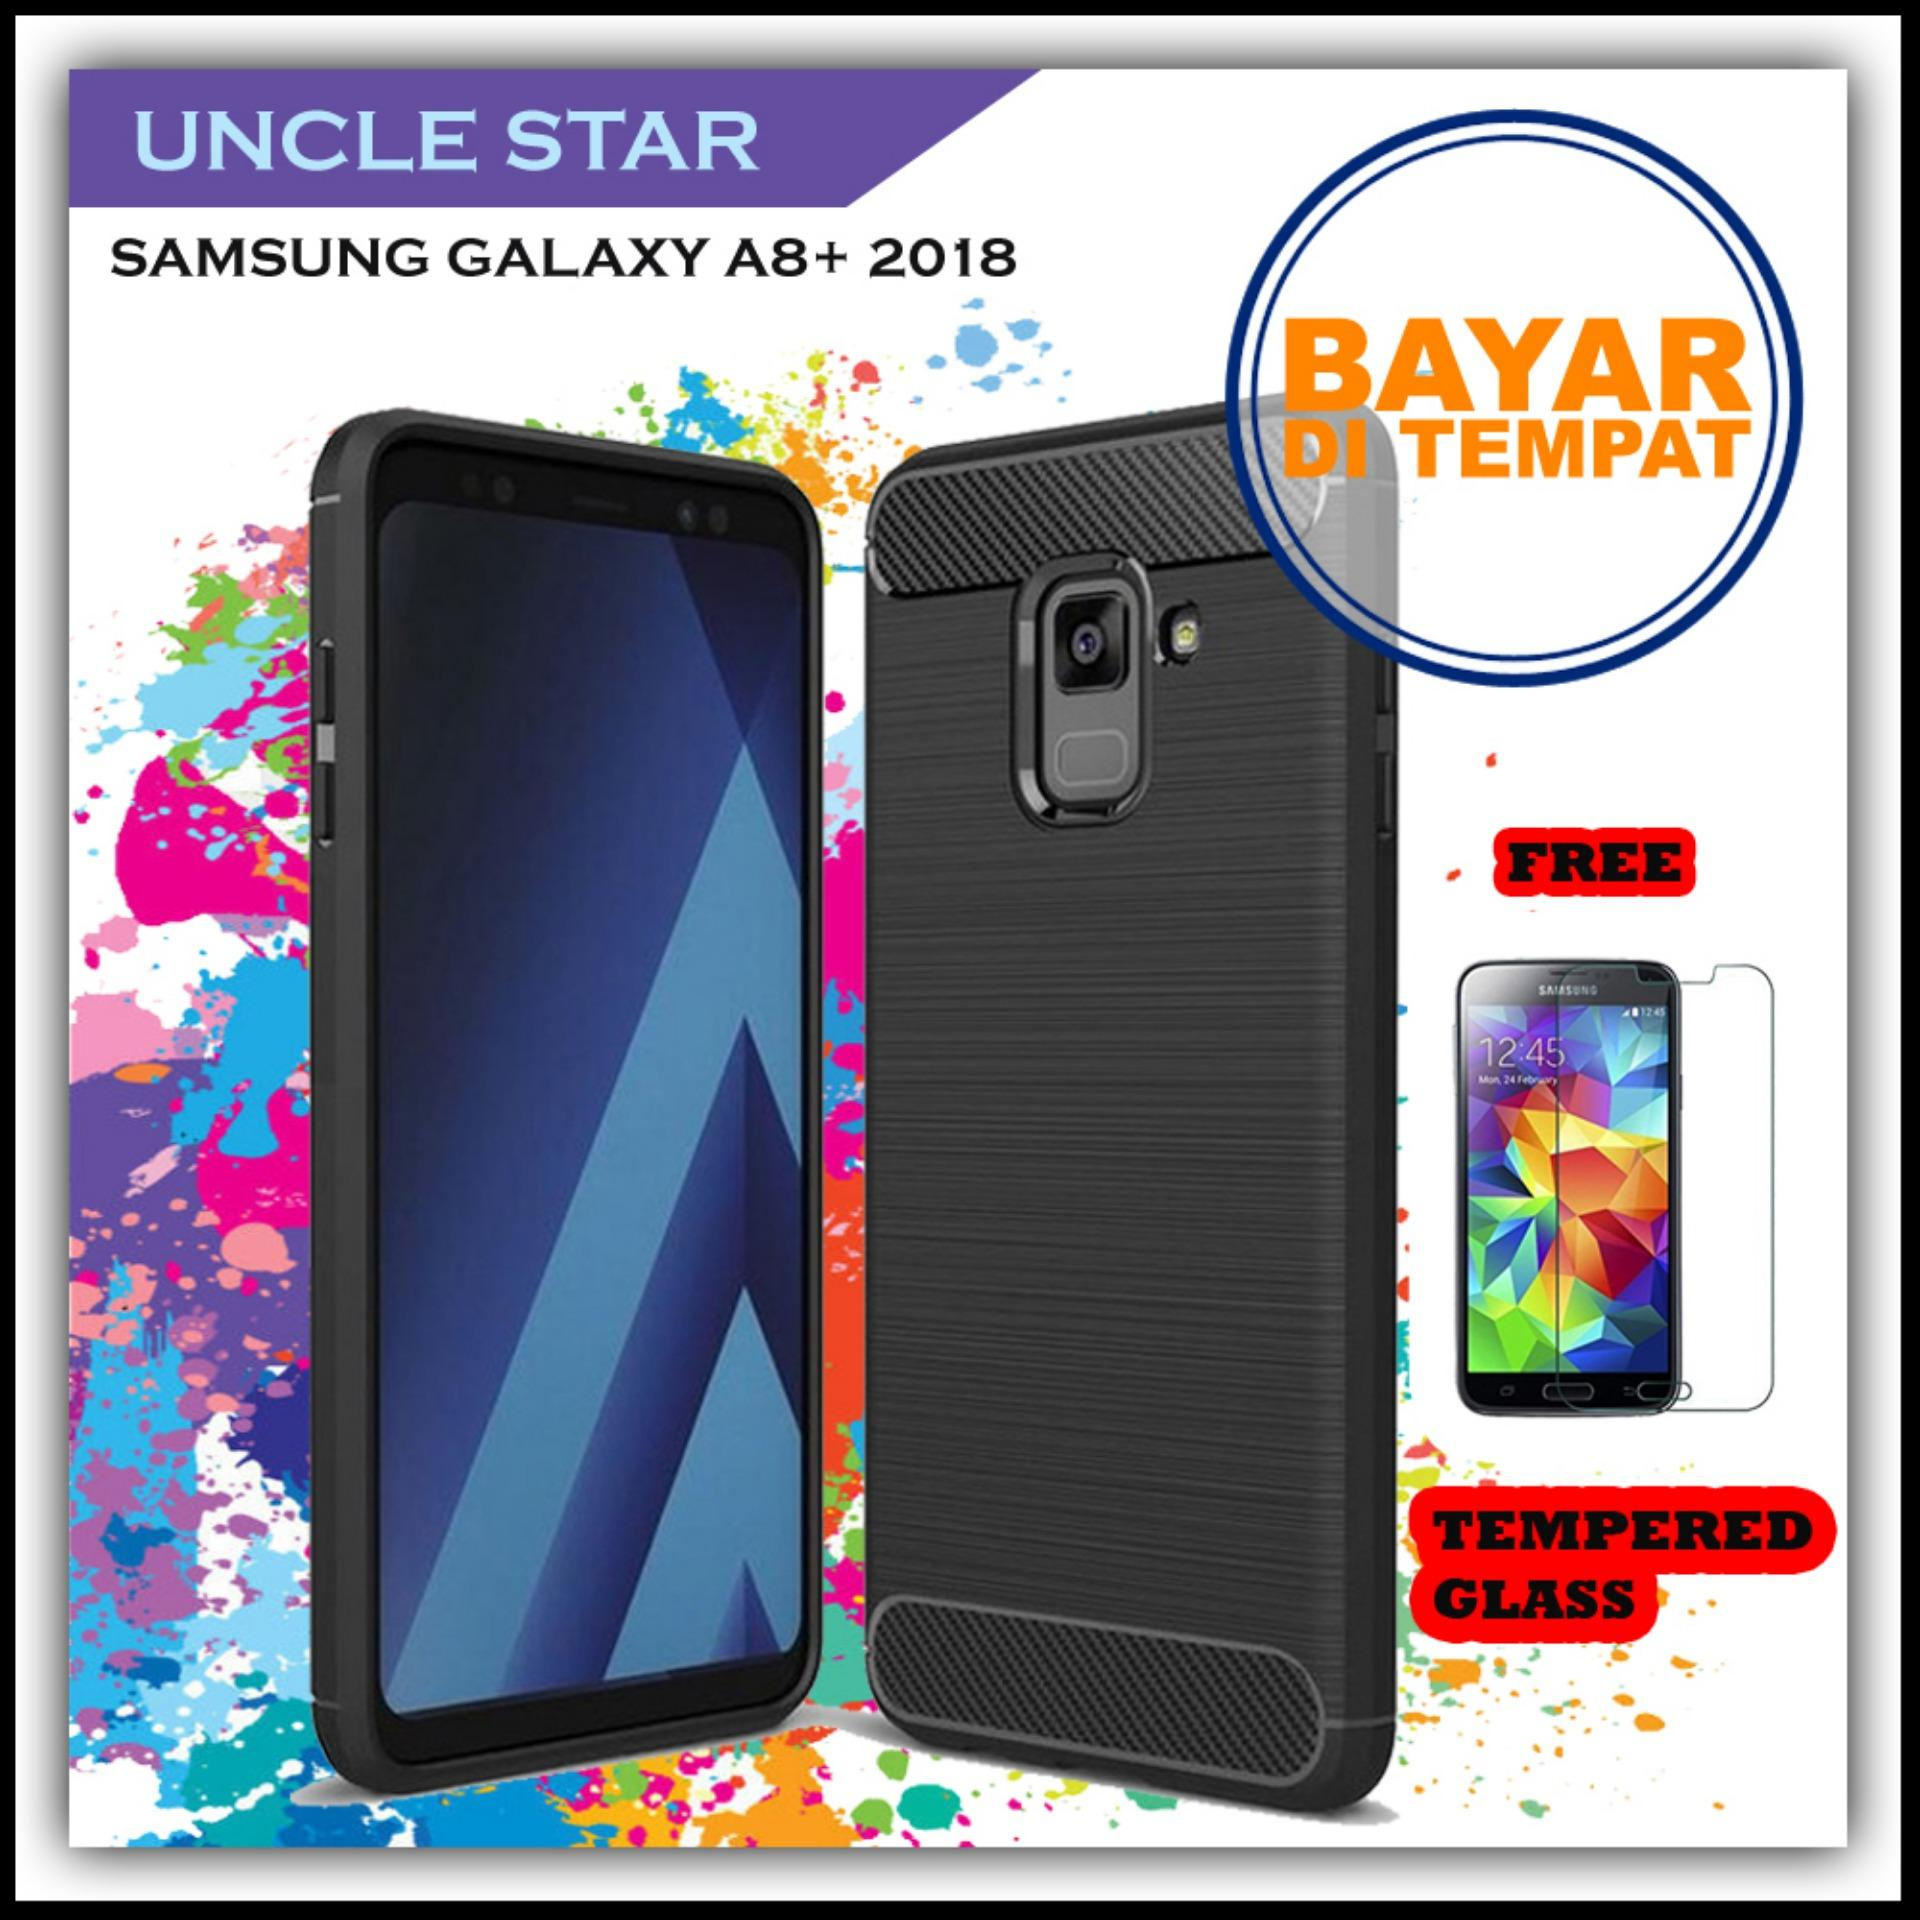 ... Uncle Star Case Ipaky Carbon Fiber Shockproof Hybrid Elegant Case for Samsung Galaxy A8 2018